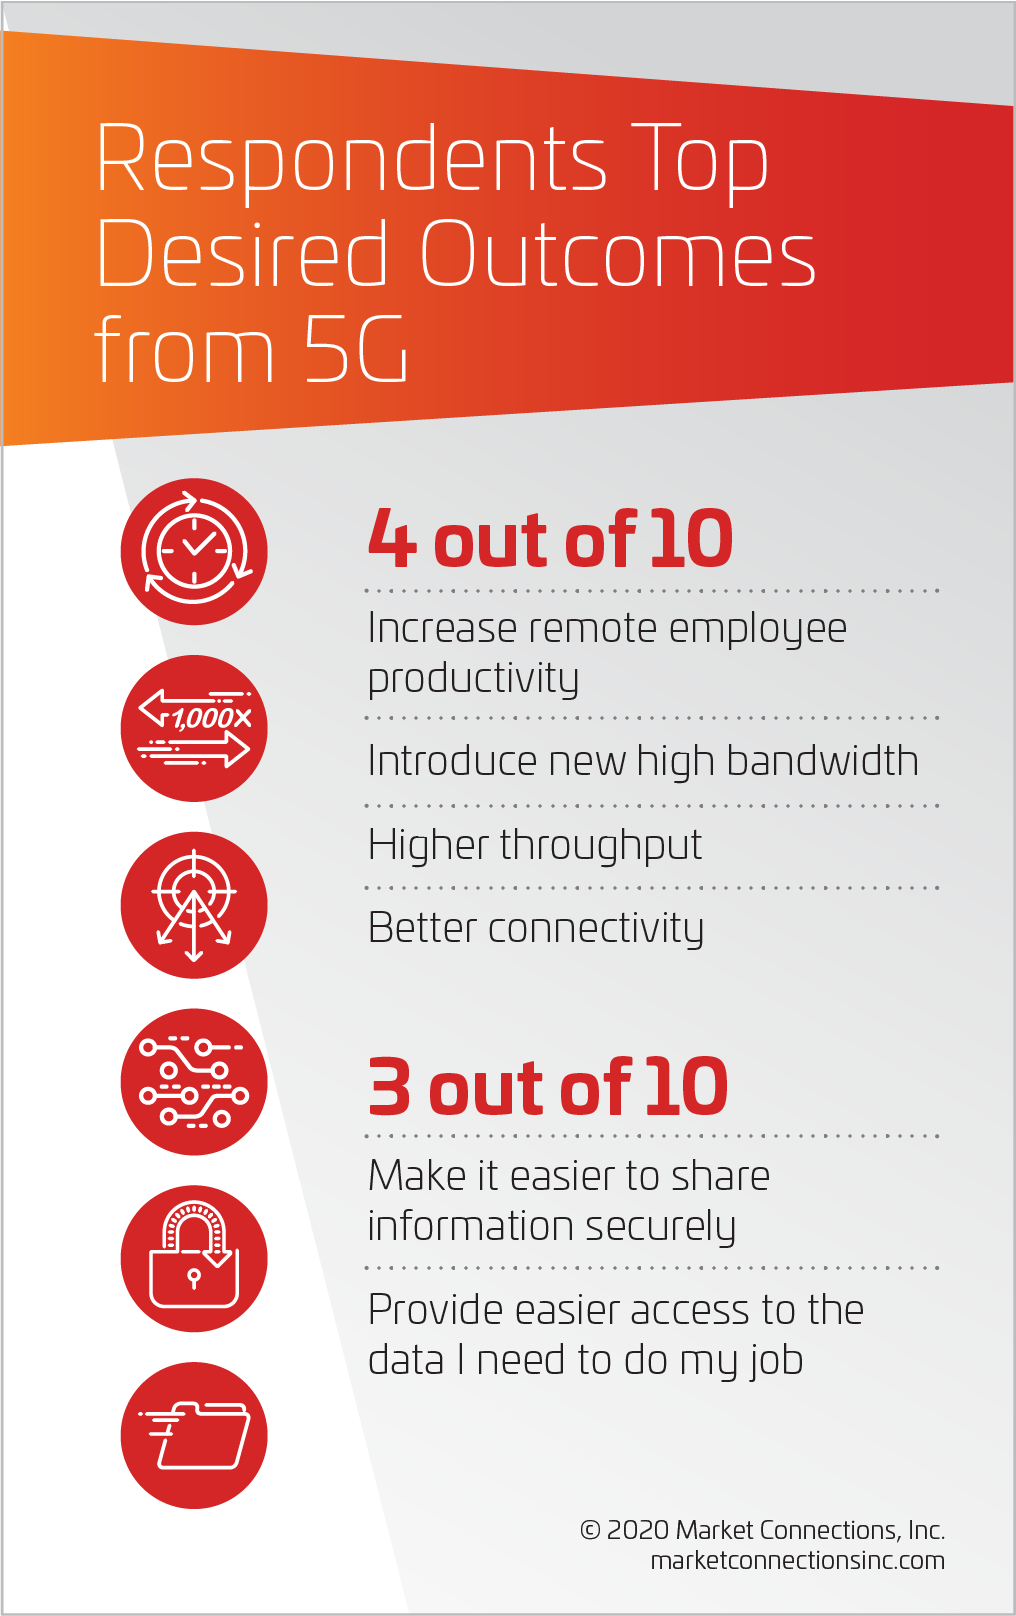 Is Your Agency 5G Ready?